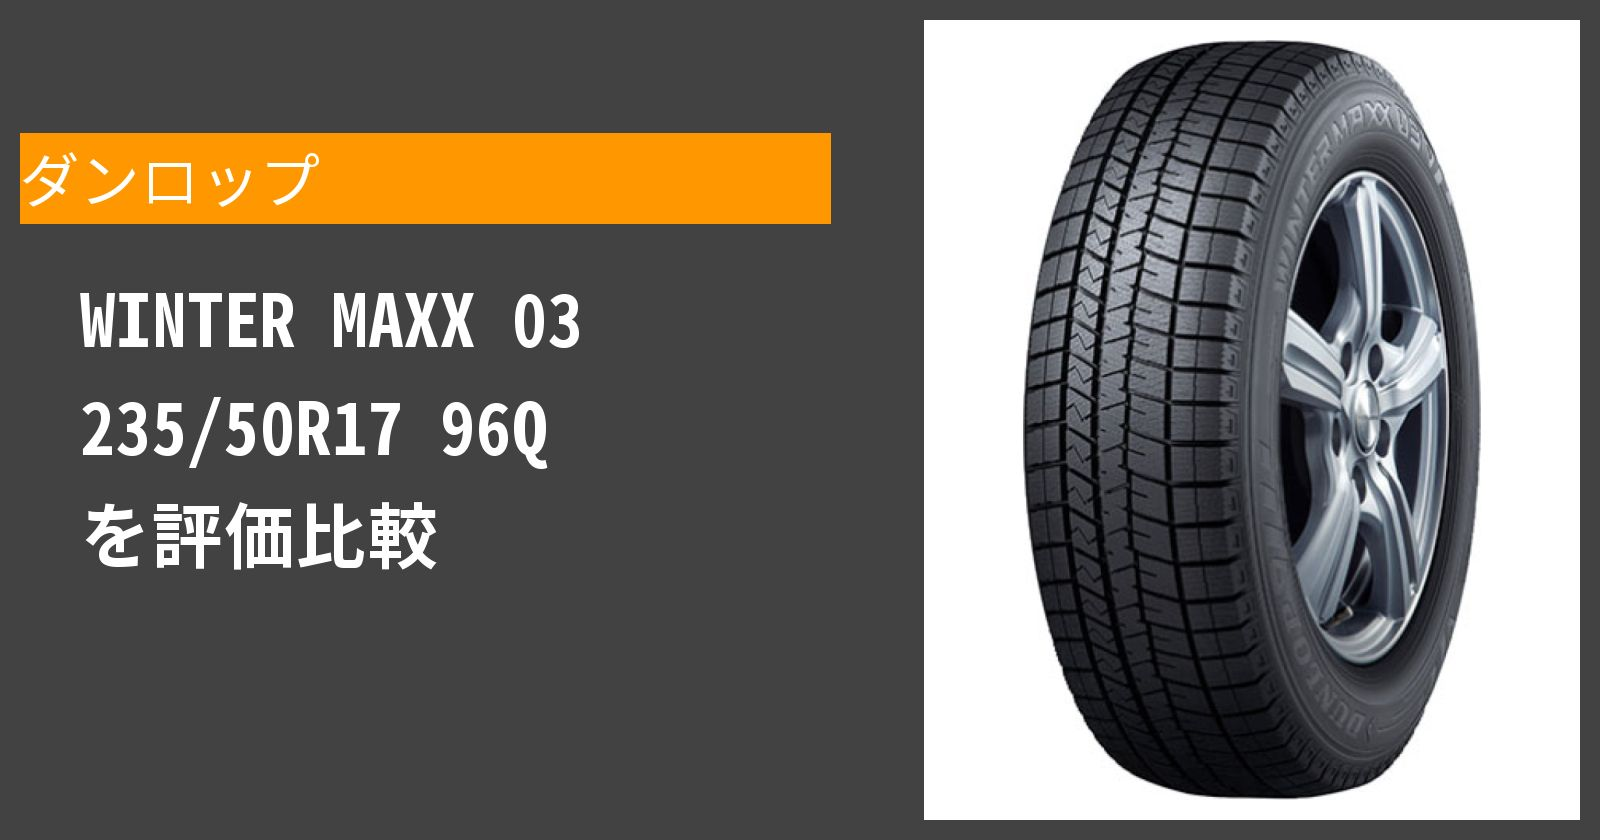 WINTER MAXX 03 235/50R17 96Qを徹底評価